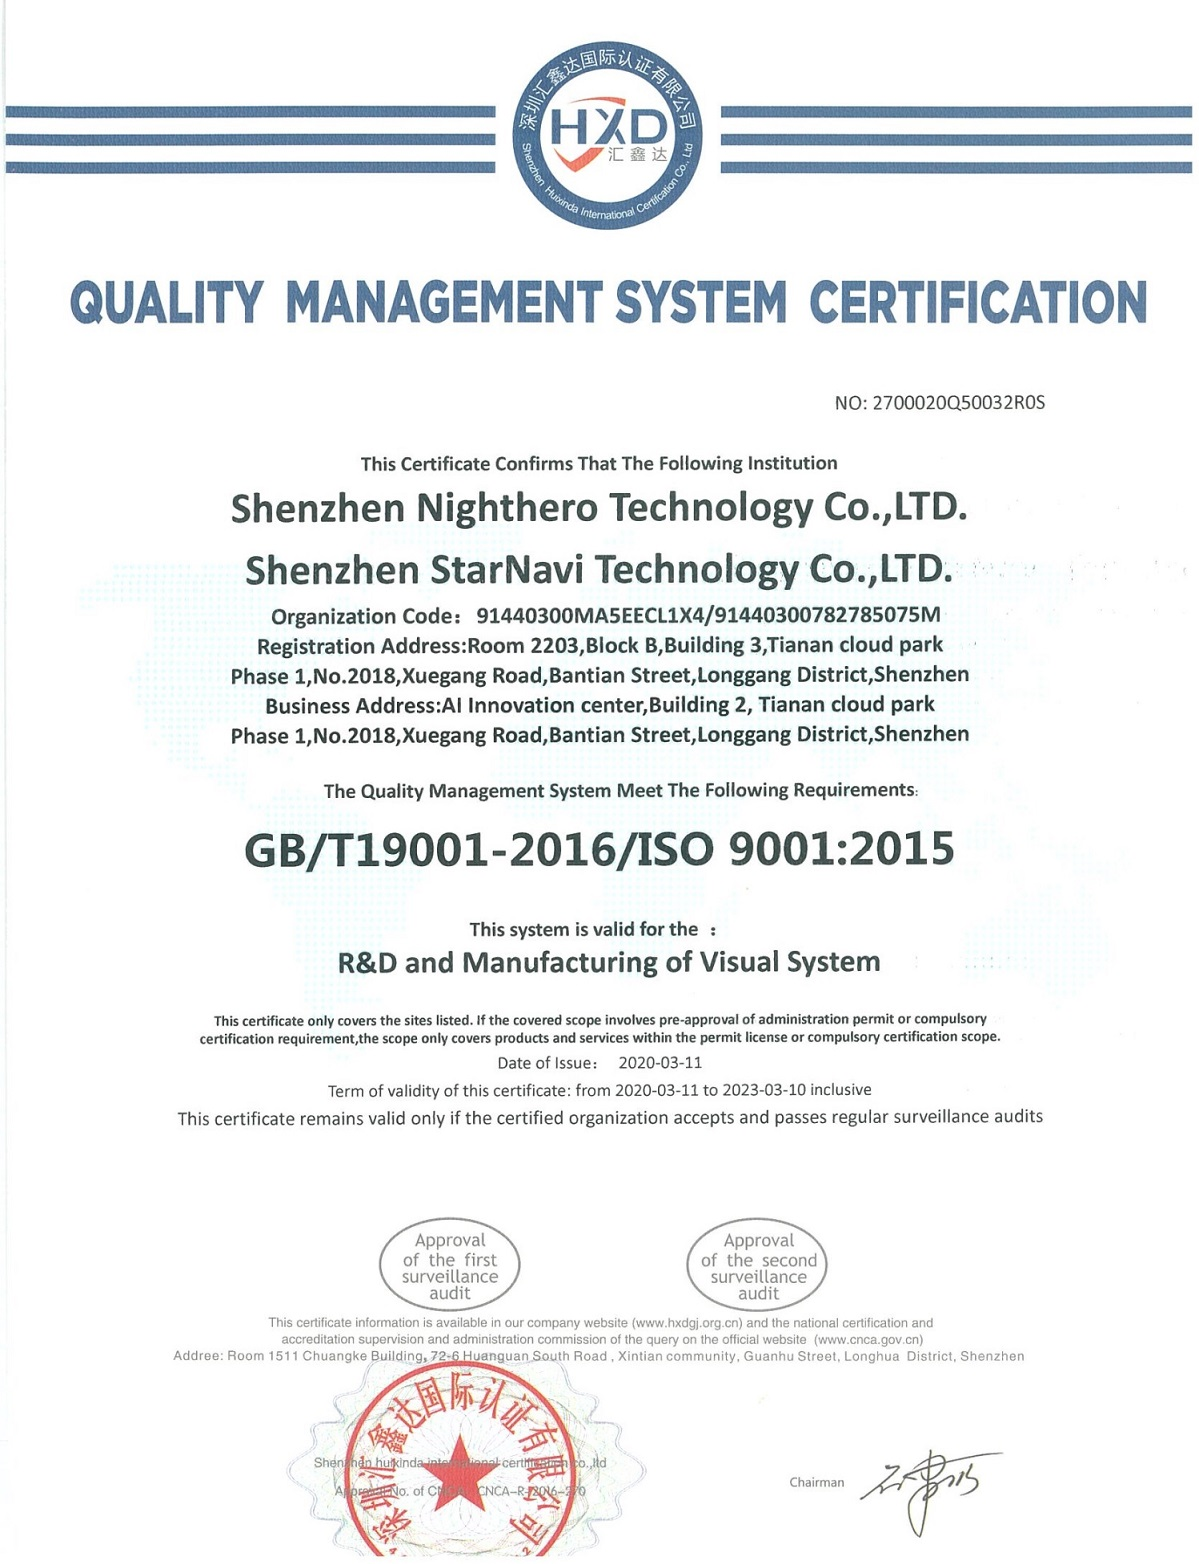 Shenzhen Star-Navi Technology Co., Ltd.